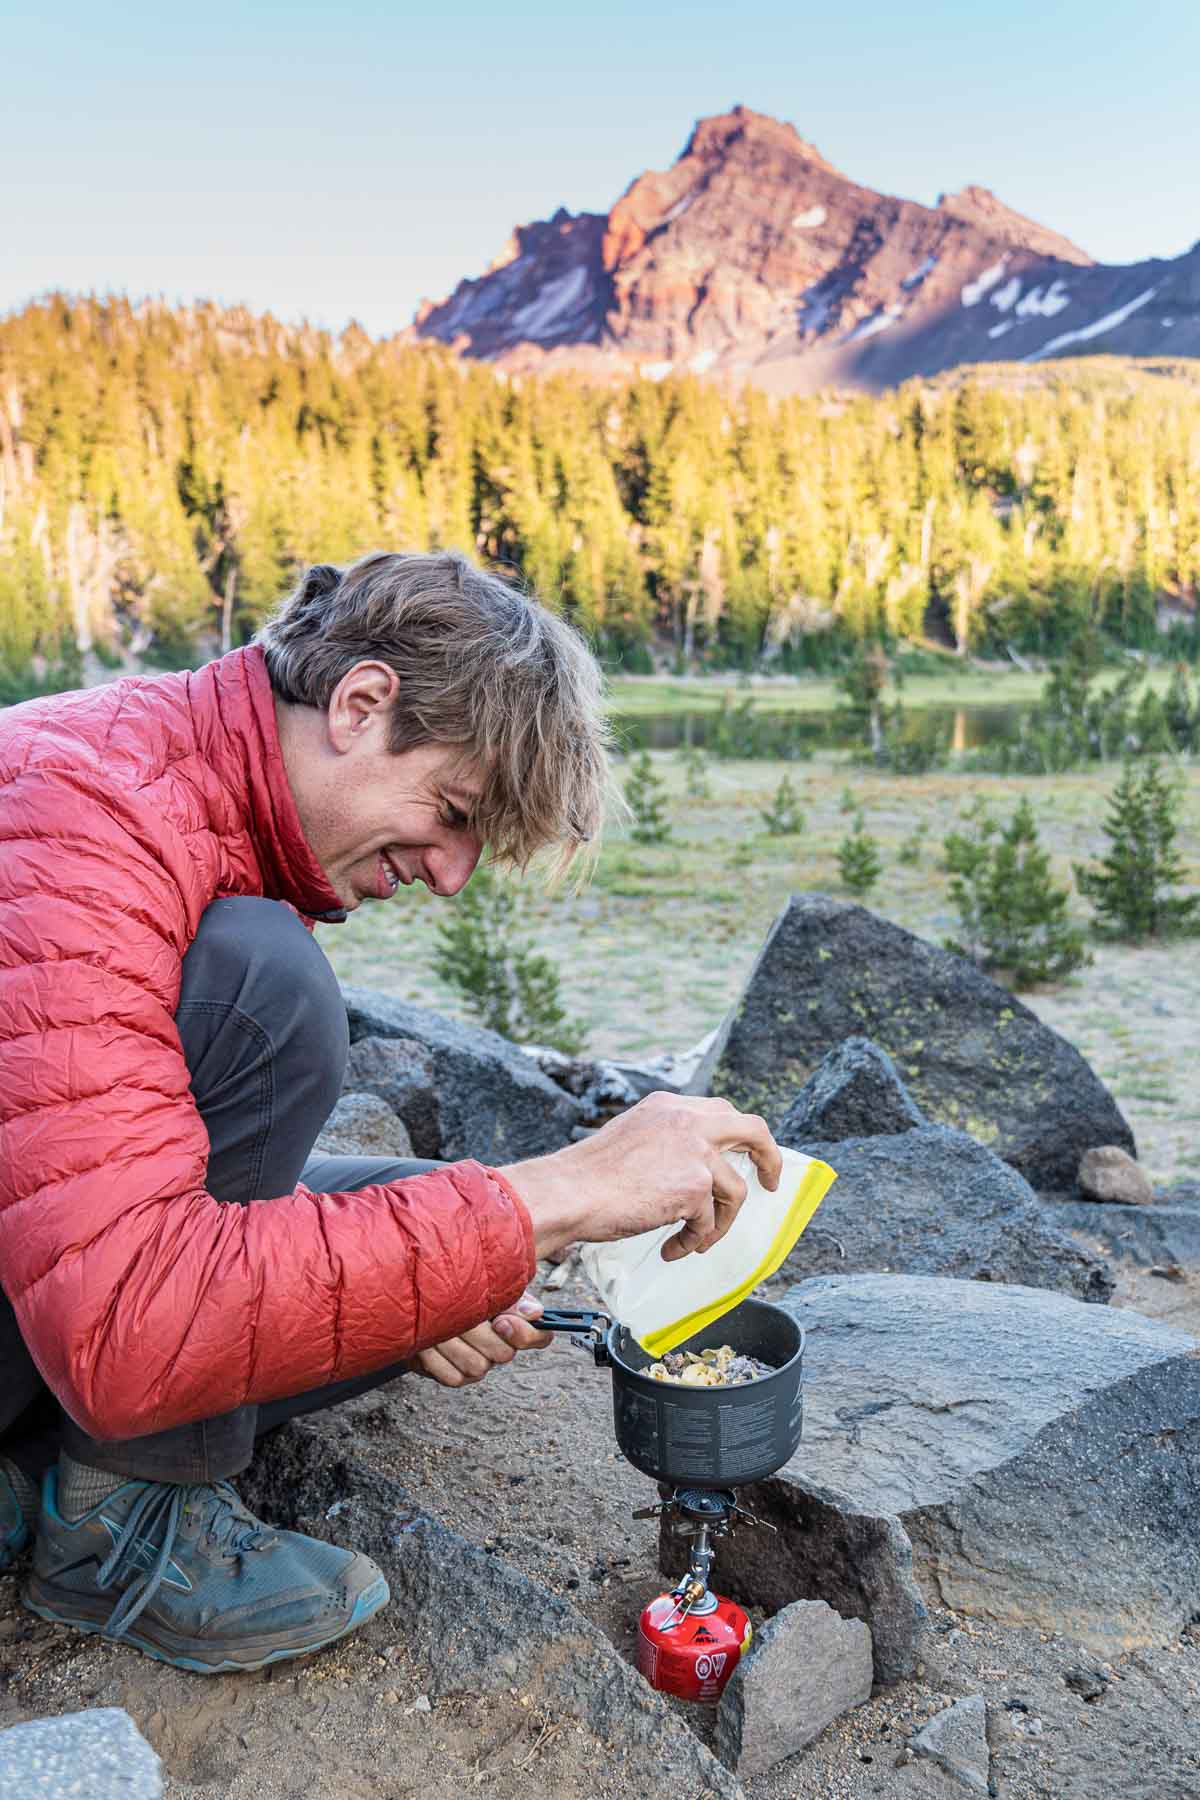 Michael andding food to a backpacking pot. There is a forest and mountain peak in the distance.